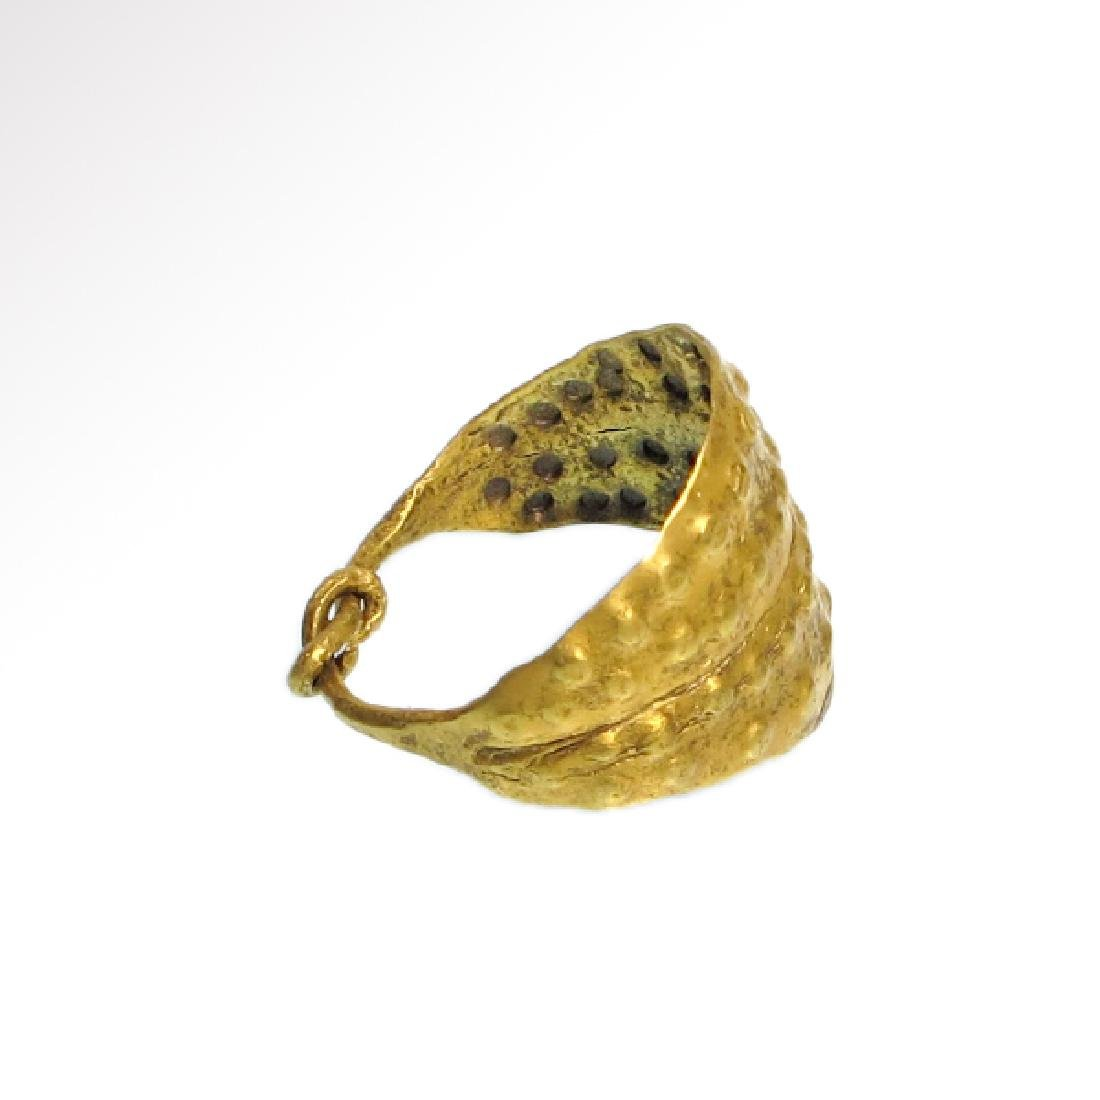 Viking Gold Ring with Punched Decoration, 11th Century - 3